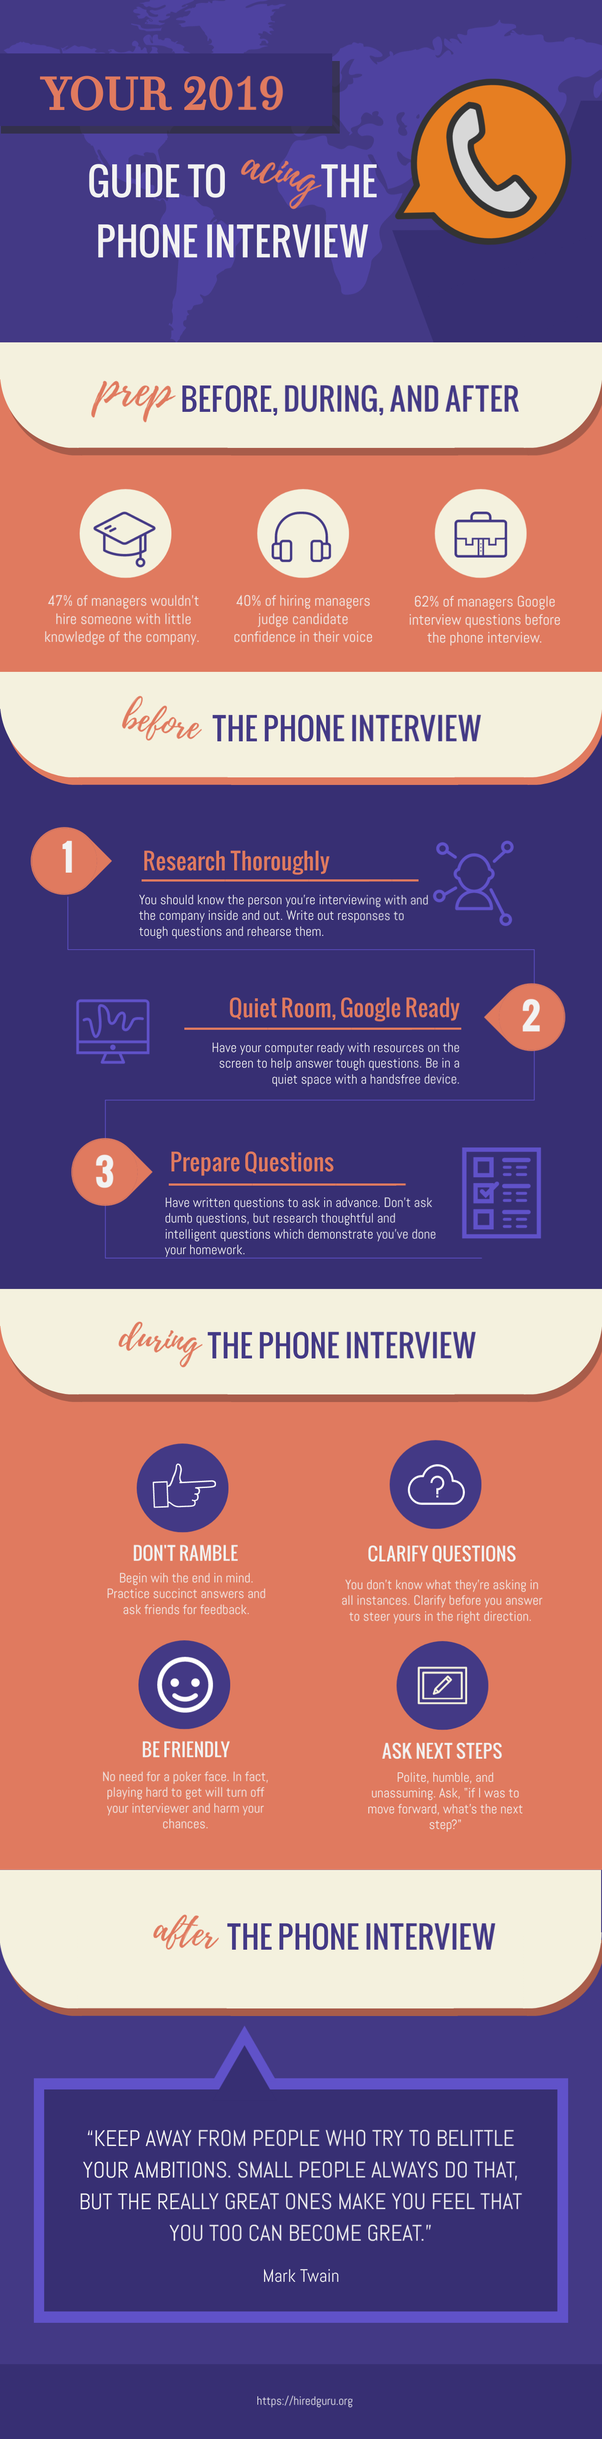 What should I expect in a Product Manager interview at